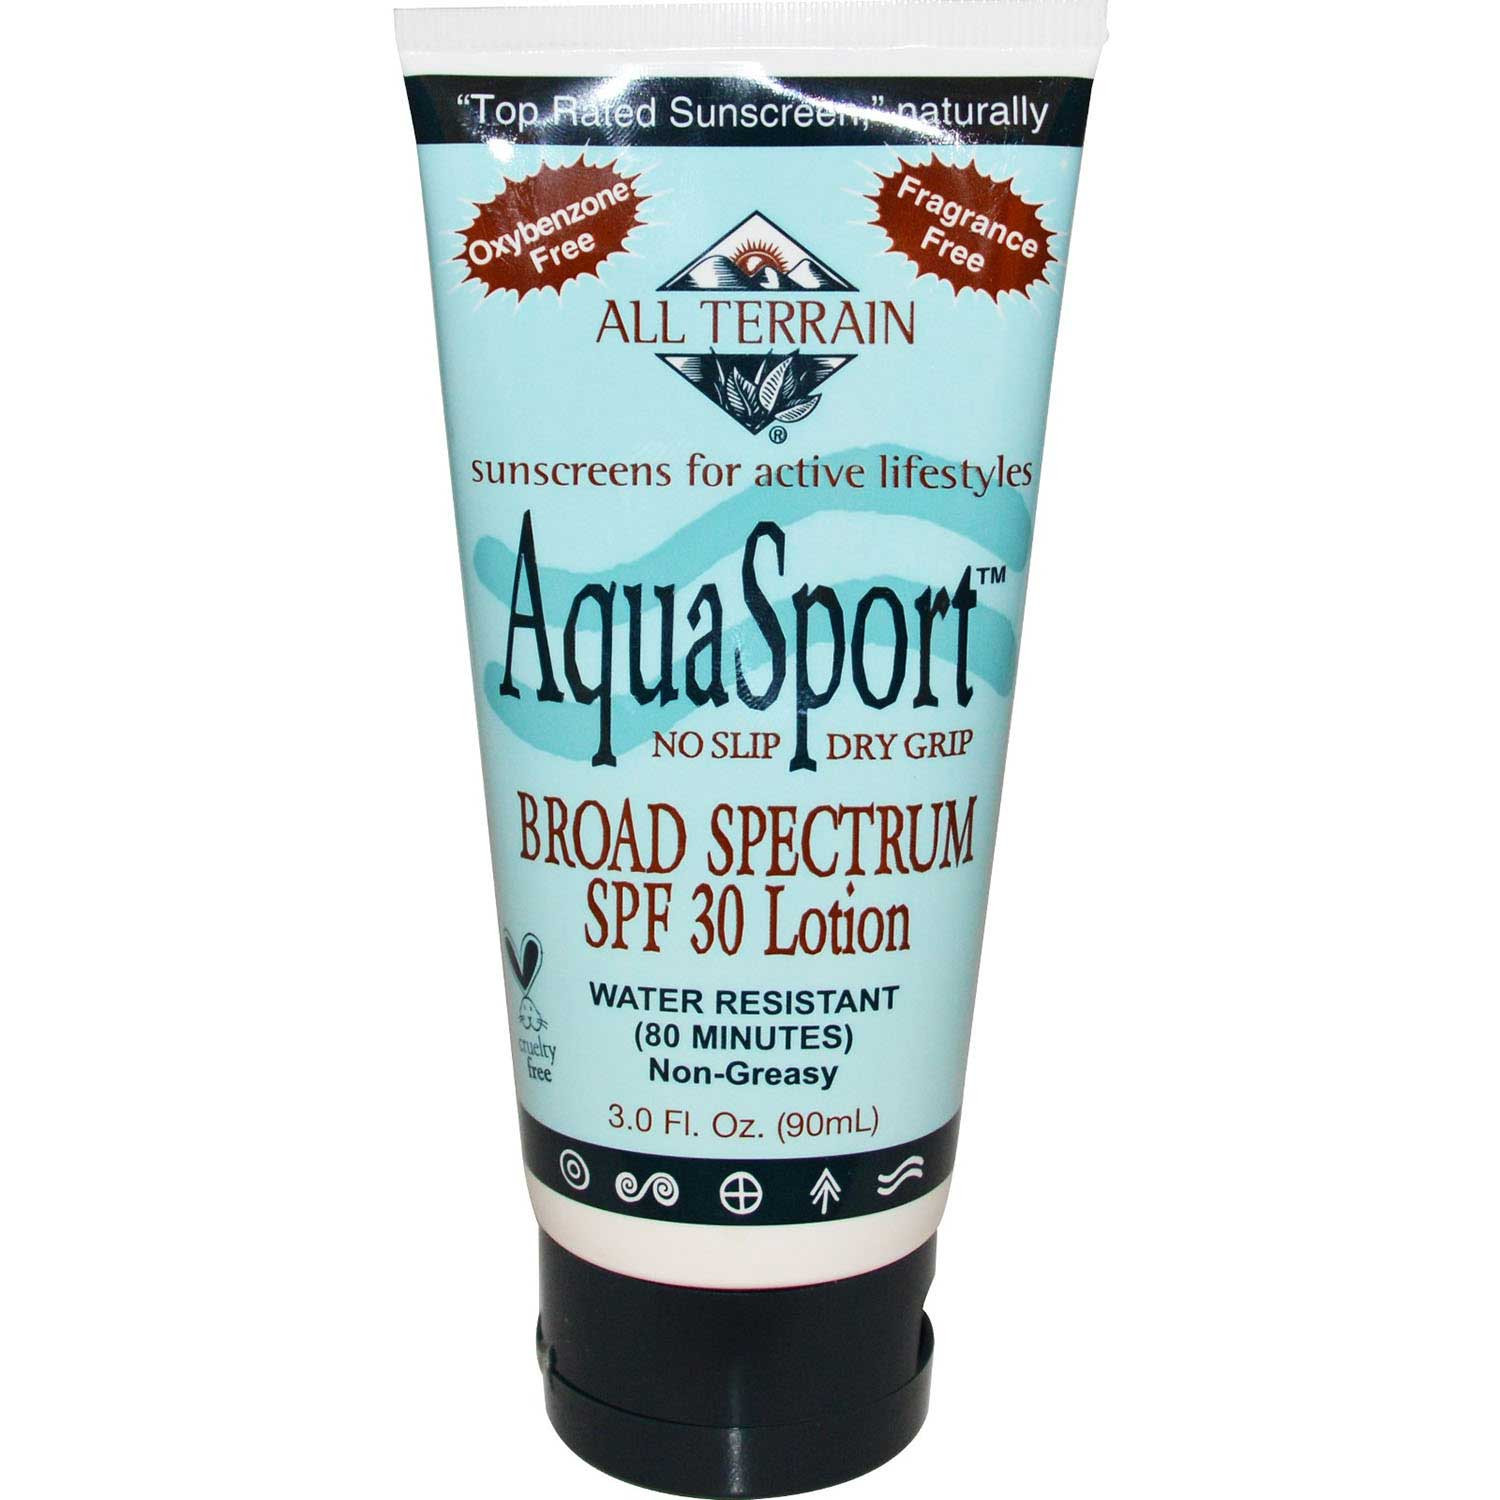 All Terrain Aquasport SPF 30 Sunblock, 90ml